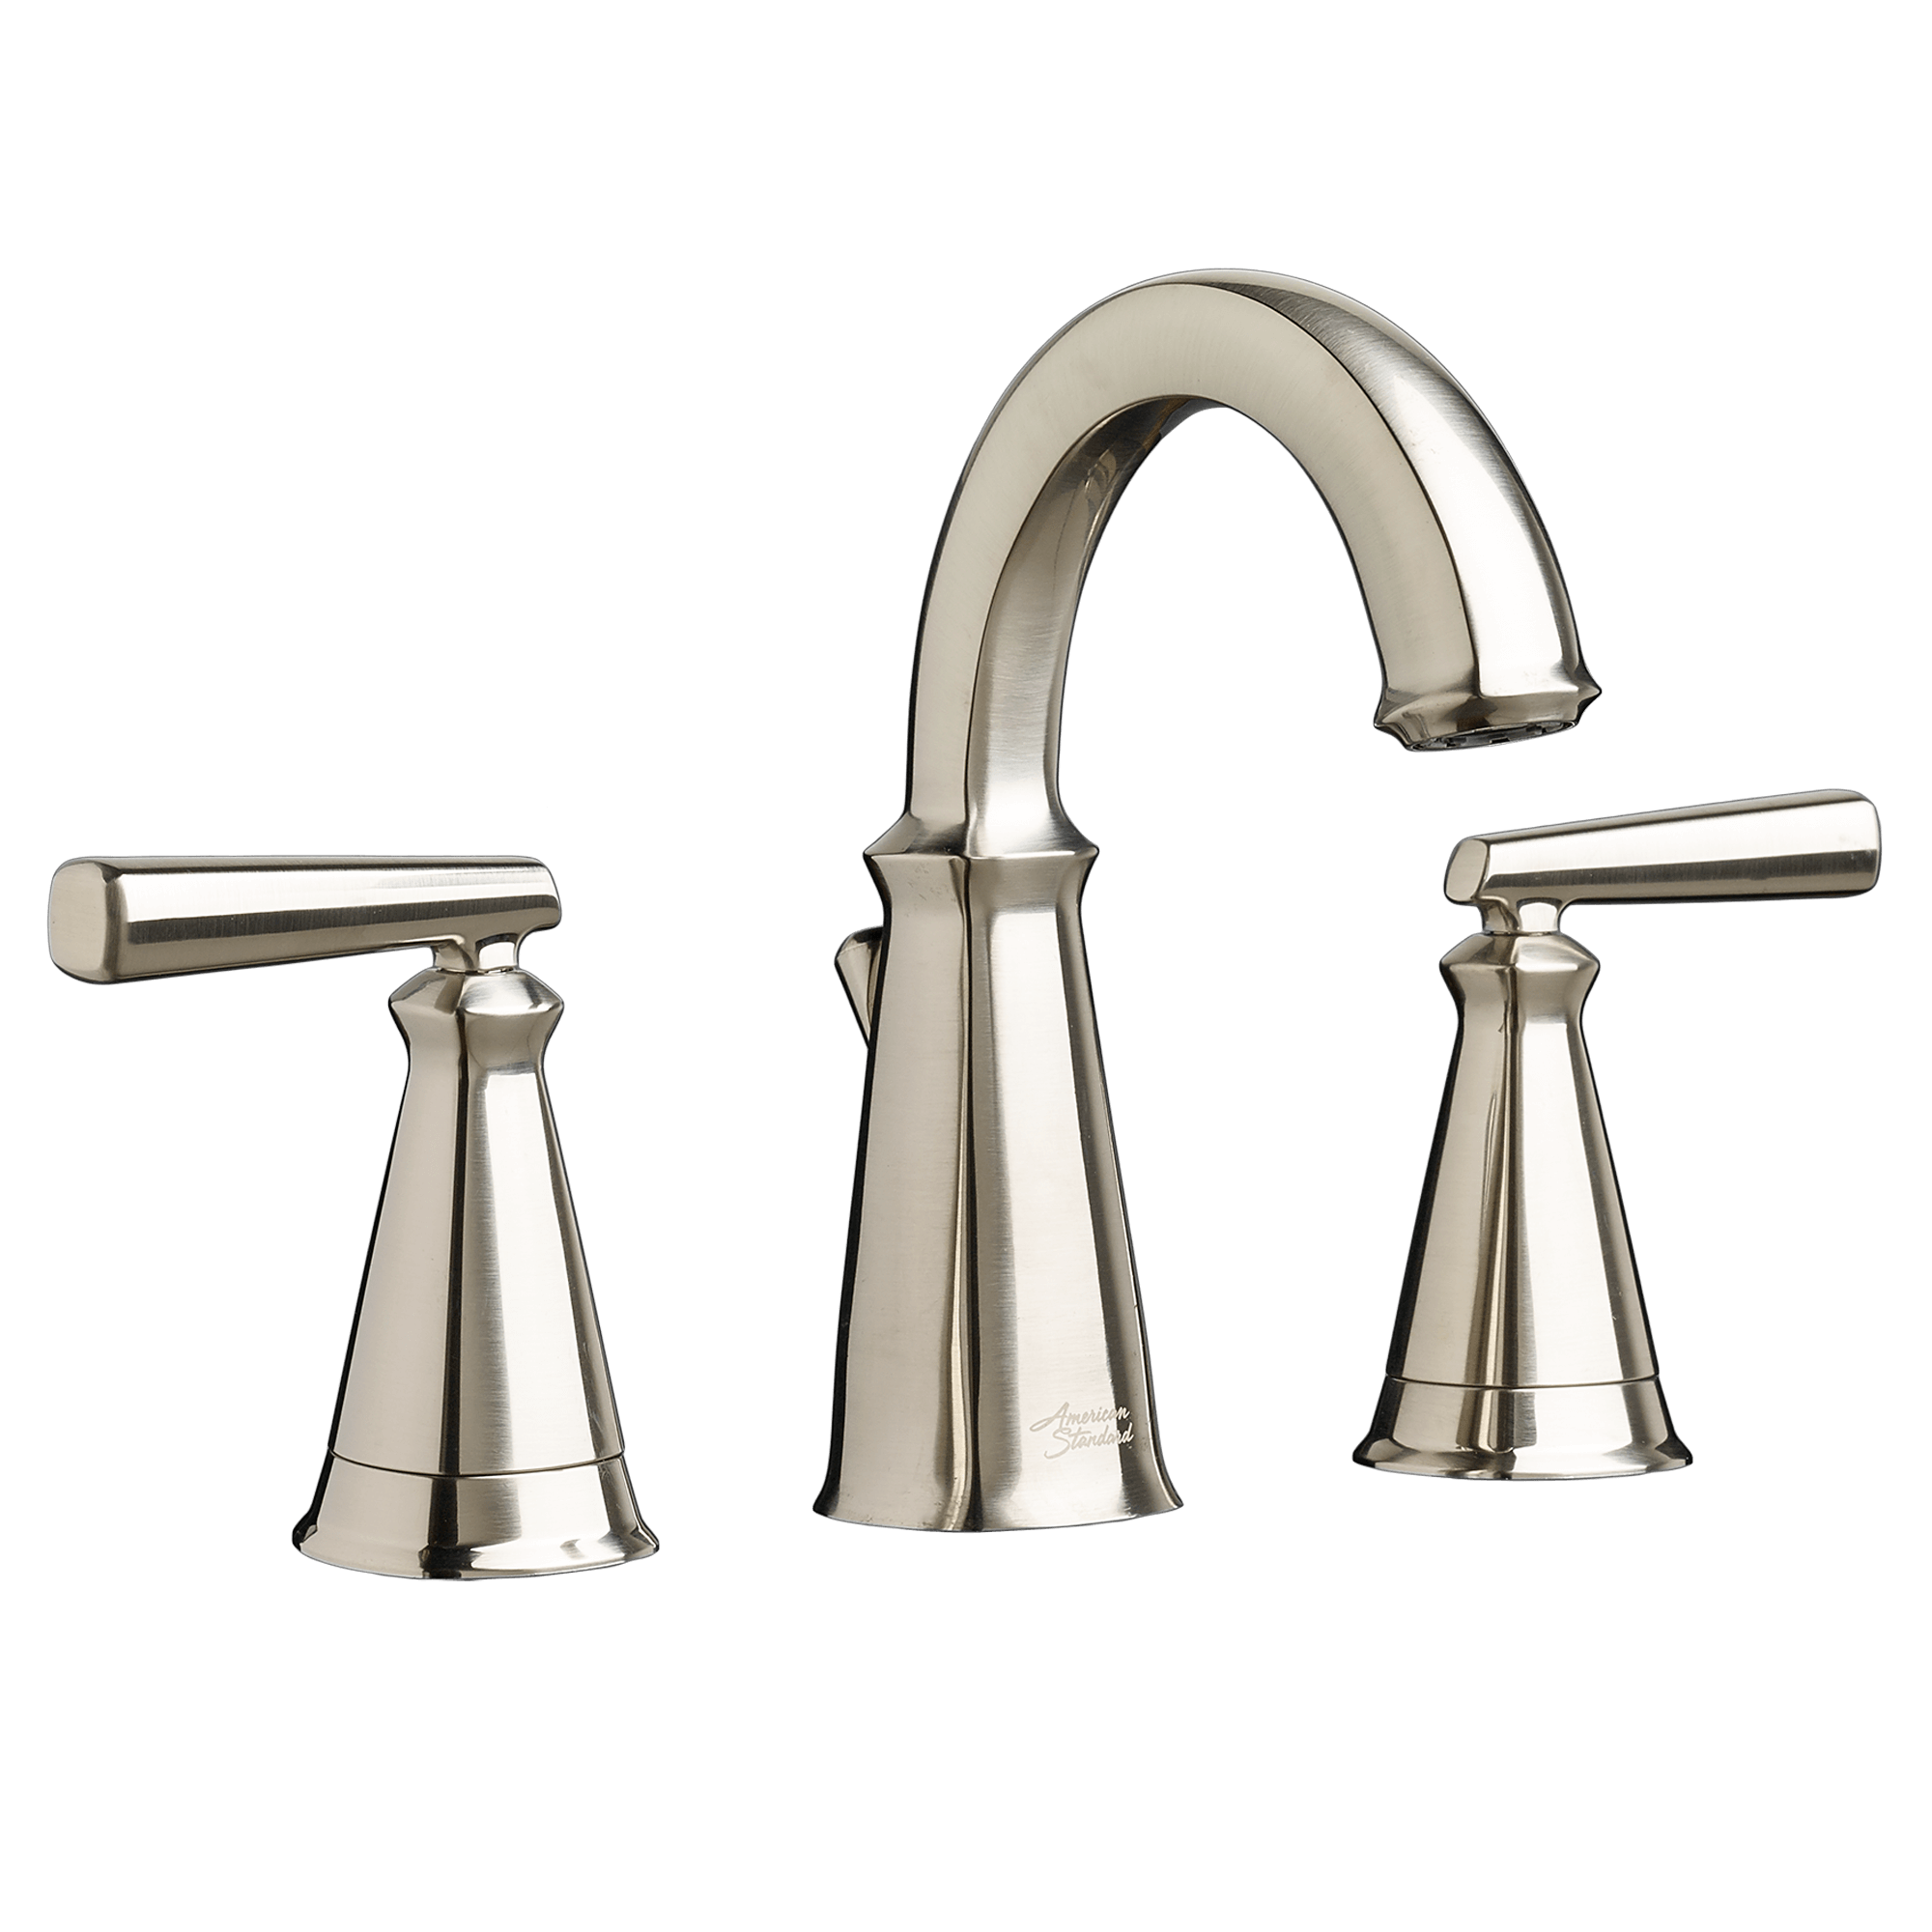 widespread kitchen faucet cabinets for less reviews american standard kirkdale 8 quot bathroom sink